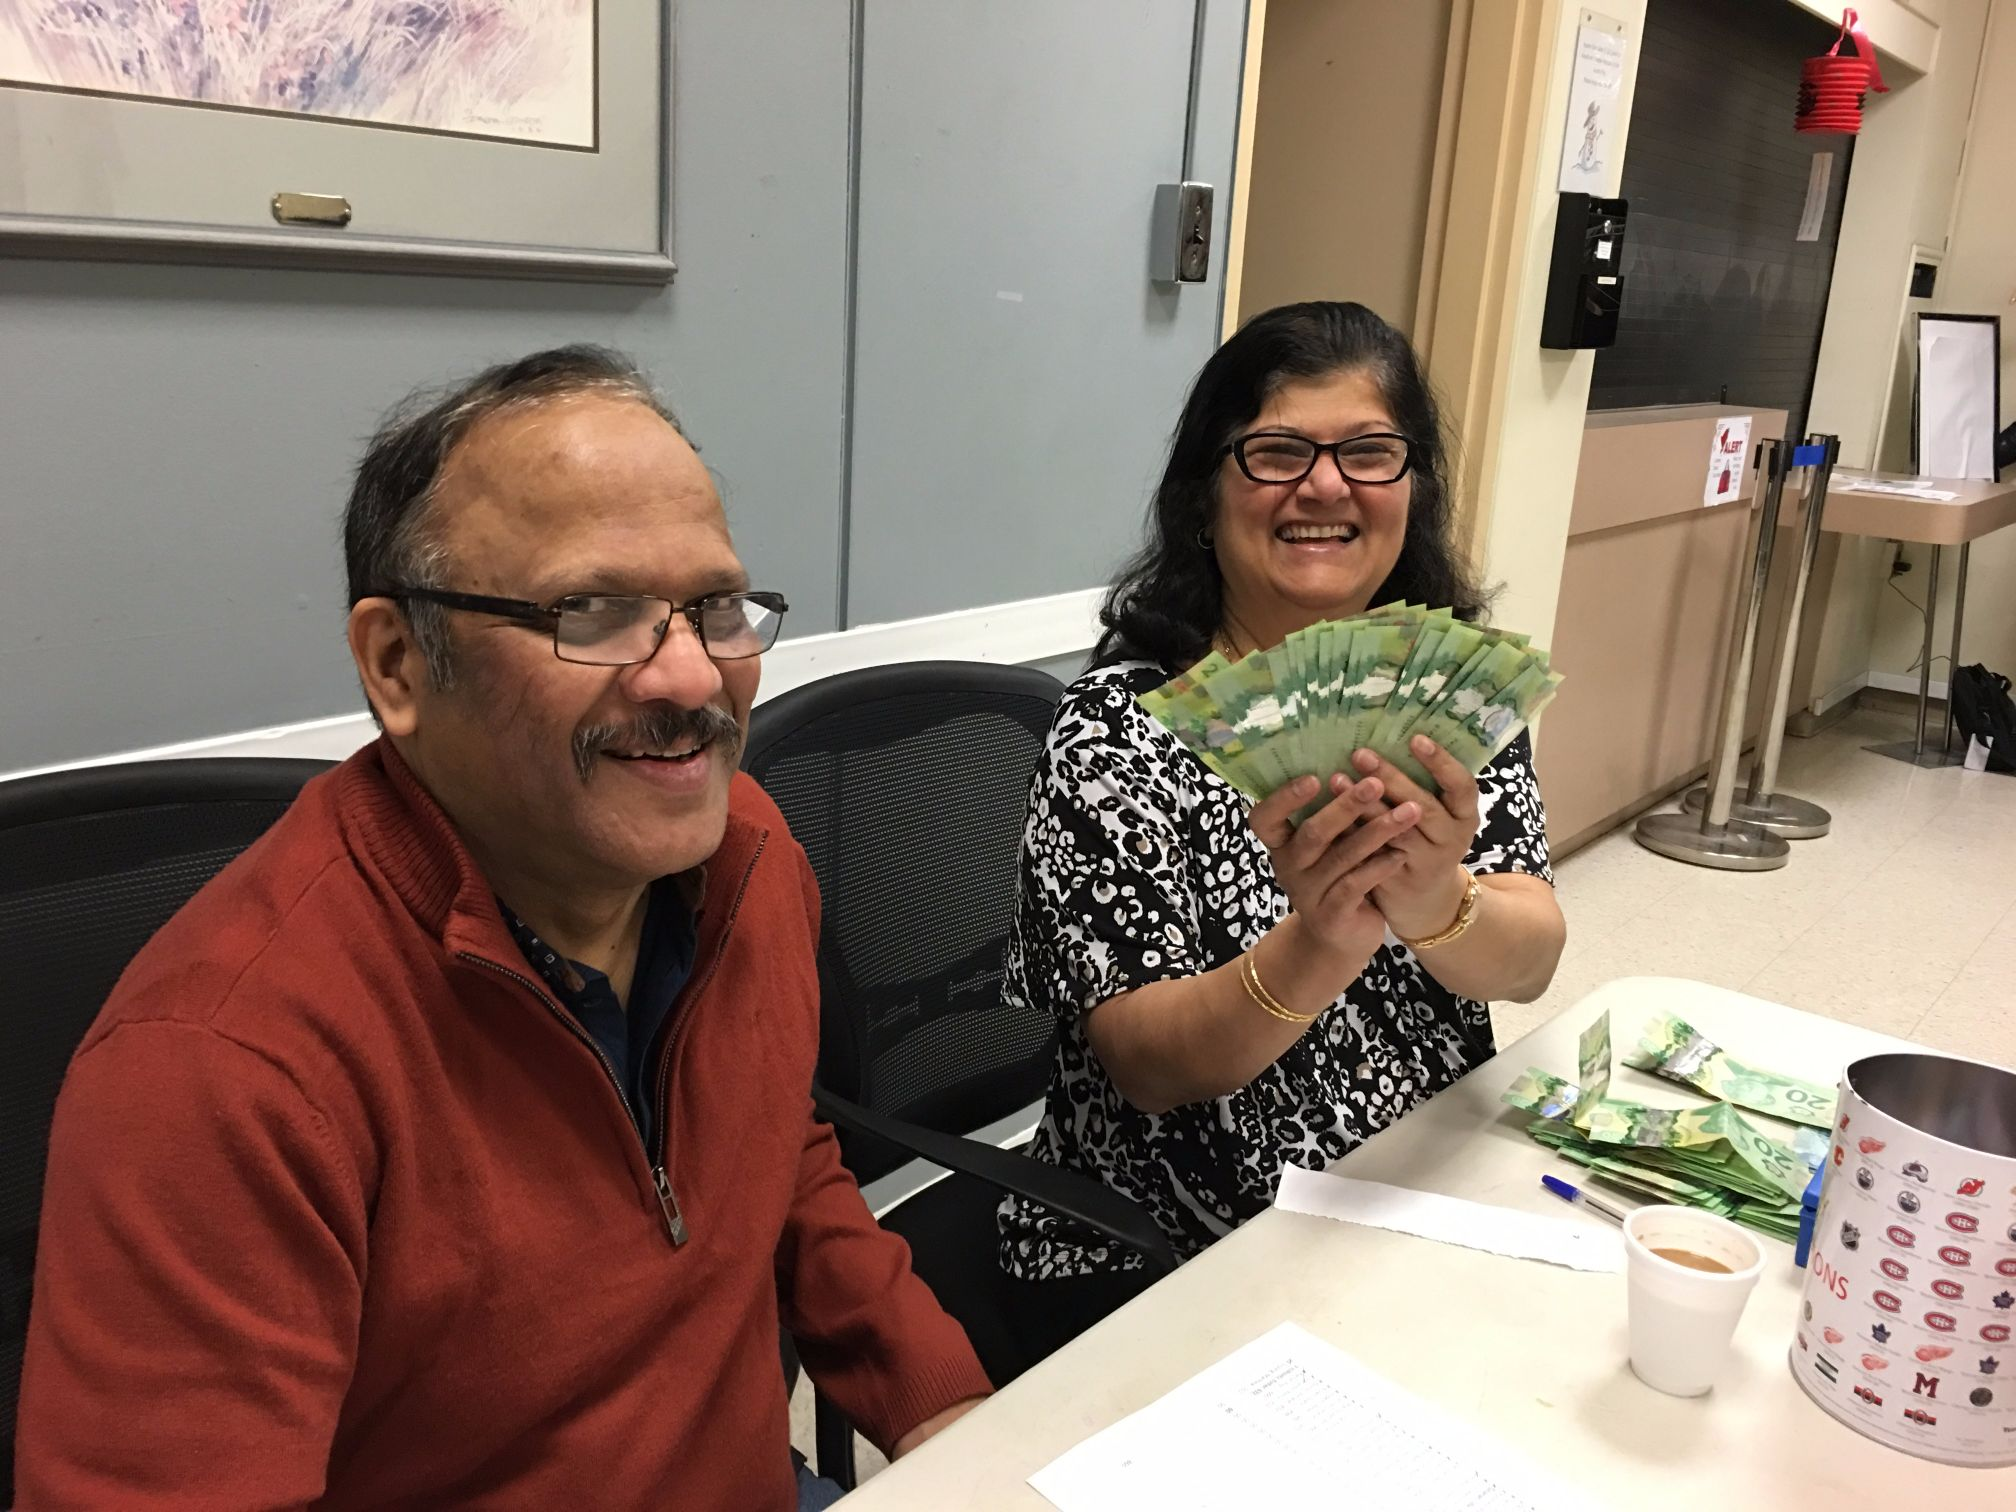 Steve and Sophia show off the big money